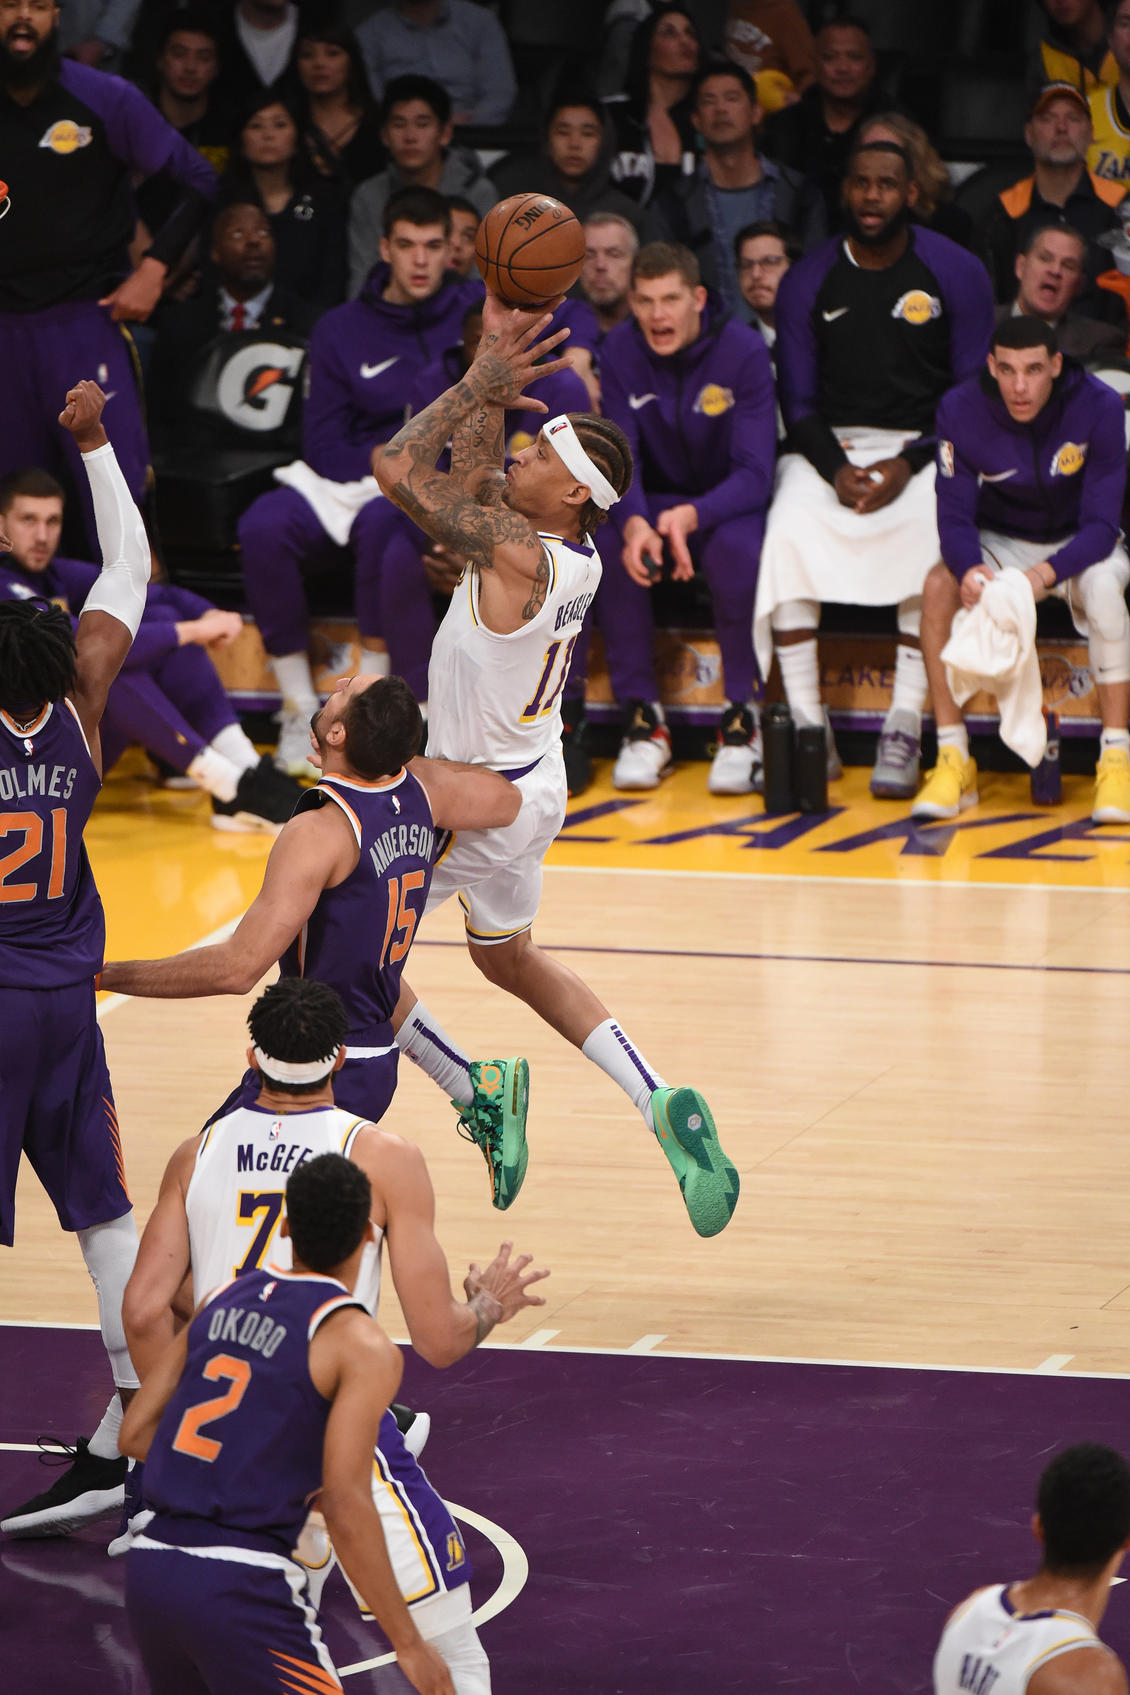 Lakers game december 2 slot machine possible outcomes